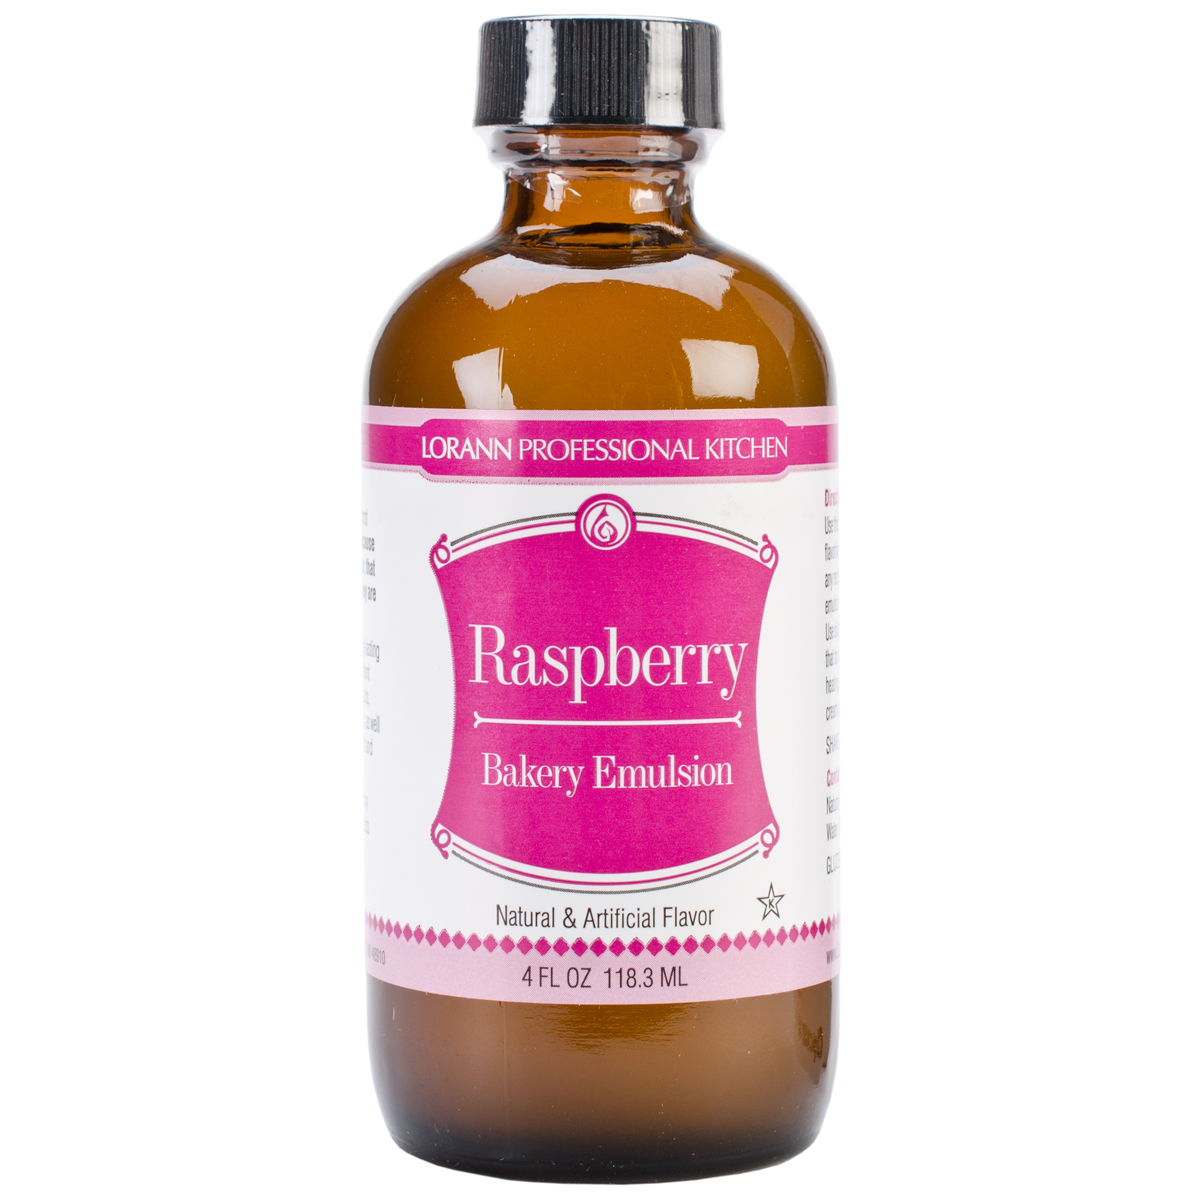 Lorann Oils Bakery Emulsions Natural & Artificial Flavor Raspberry                      Lorann Oils Bakery Emulsions Natural & Artificial Flavor Raspberry by Lorann Oils